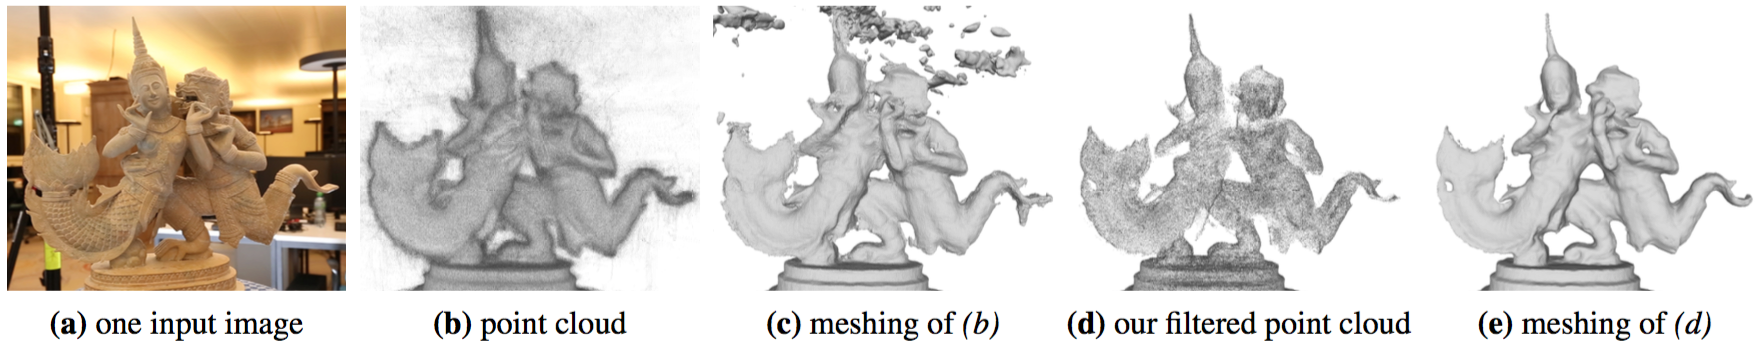 point-cloud-noise-and-outlier-removal-for-image-based-3d-reconstruction-image